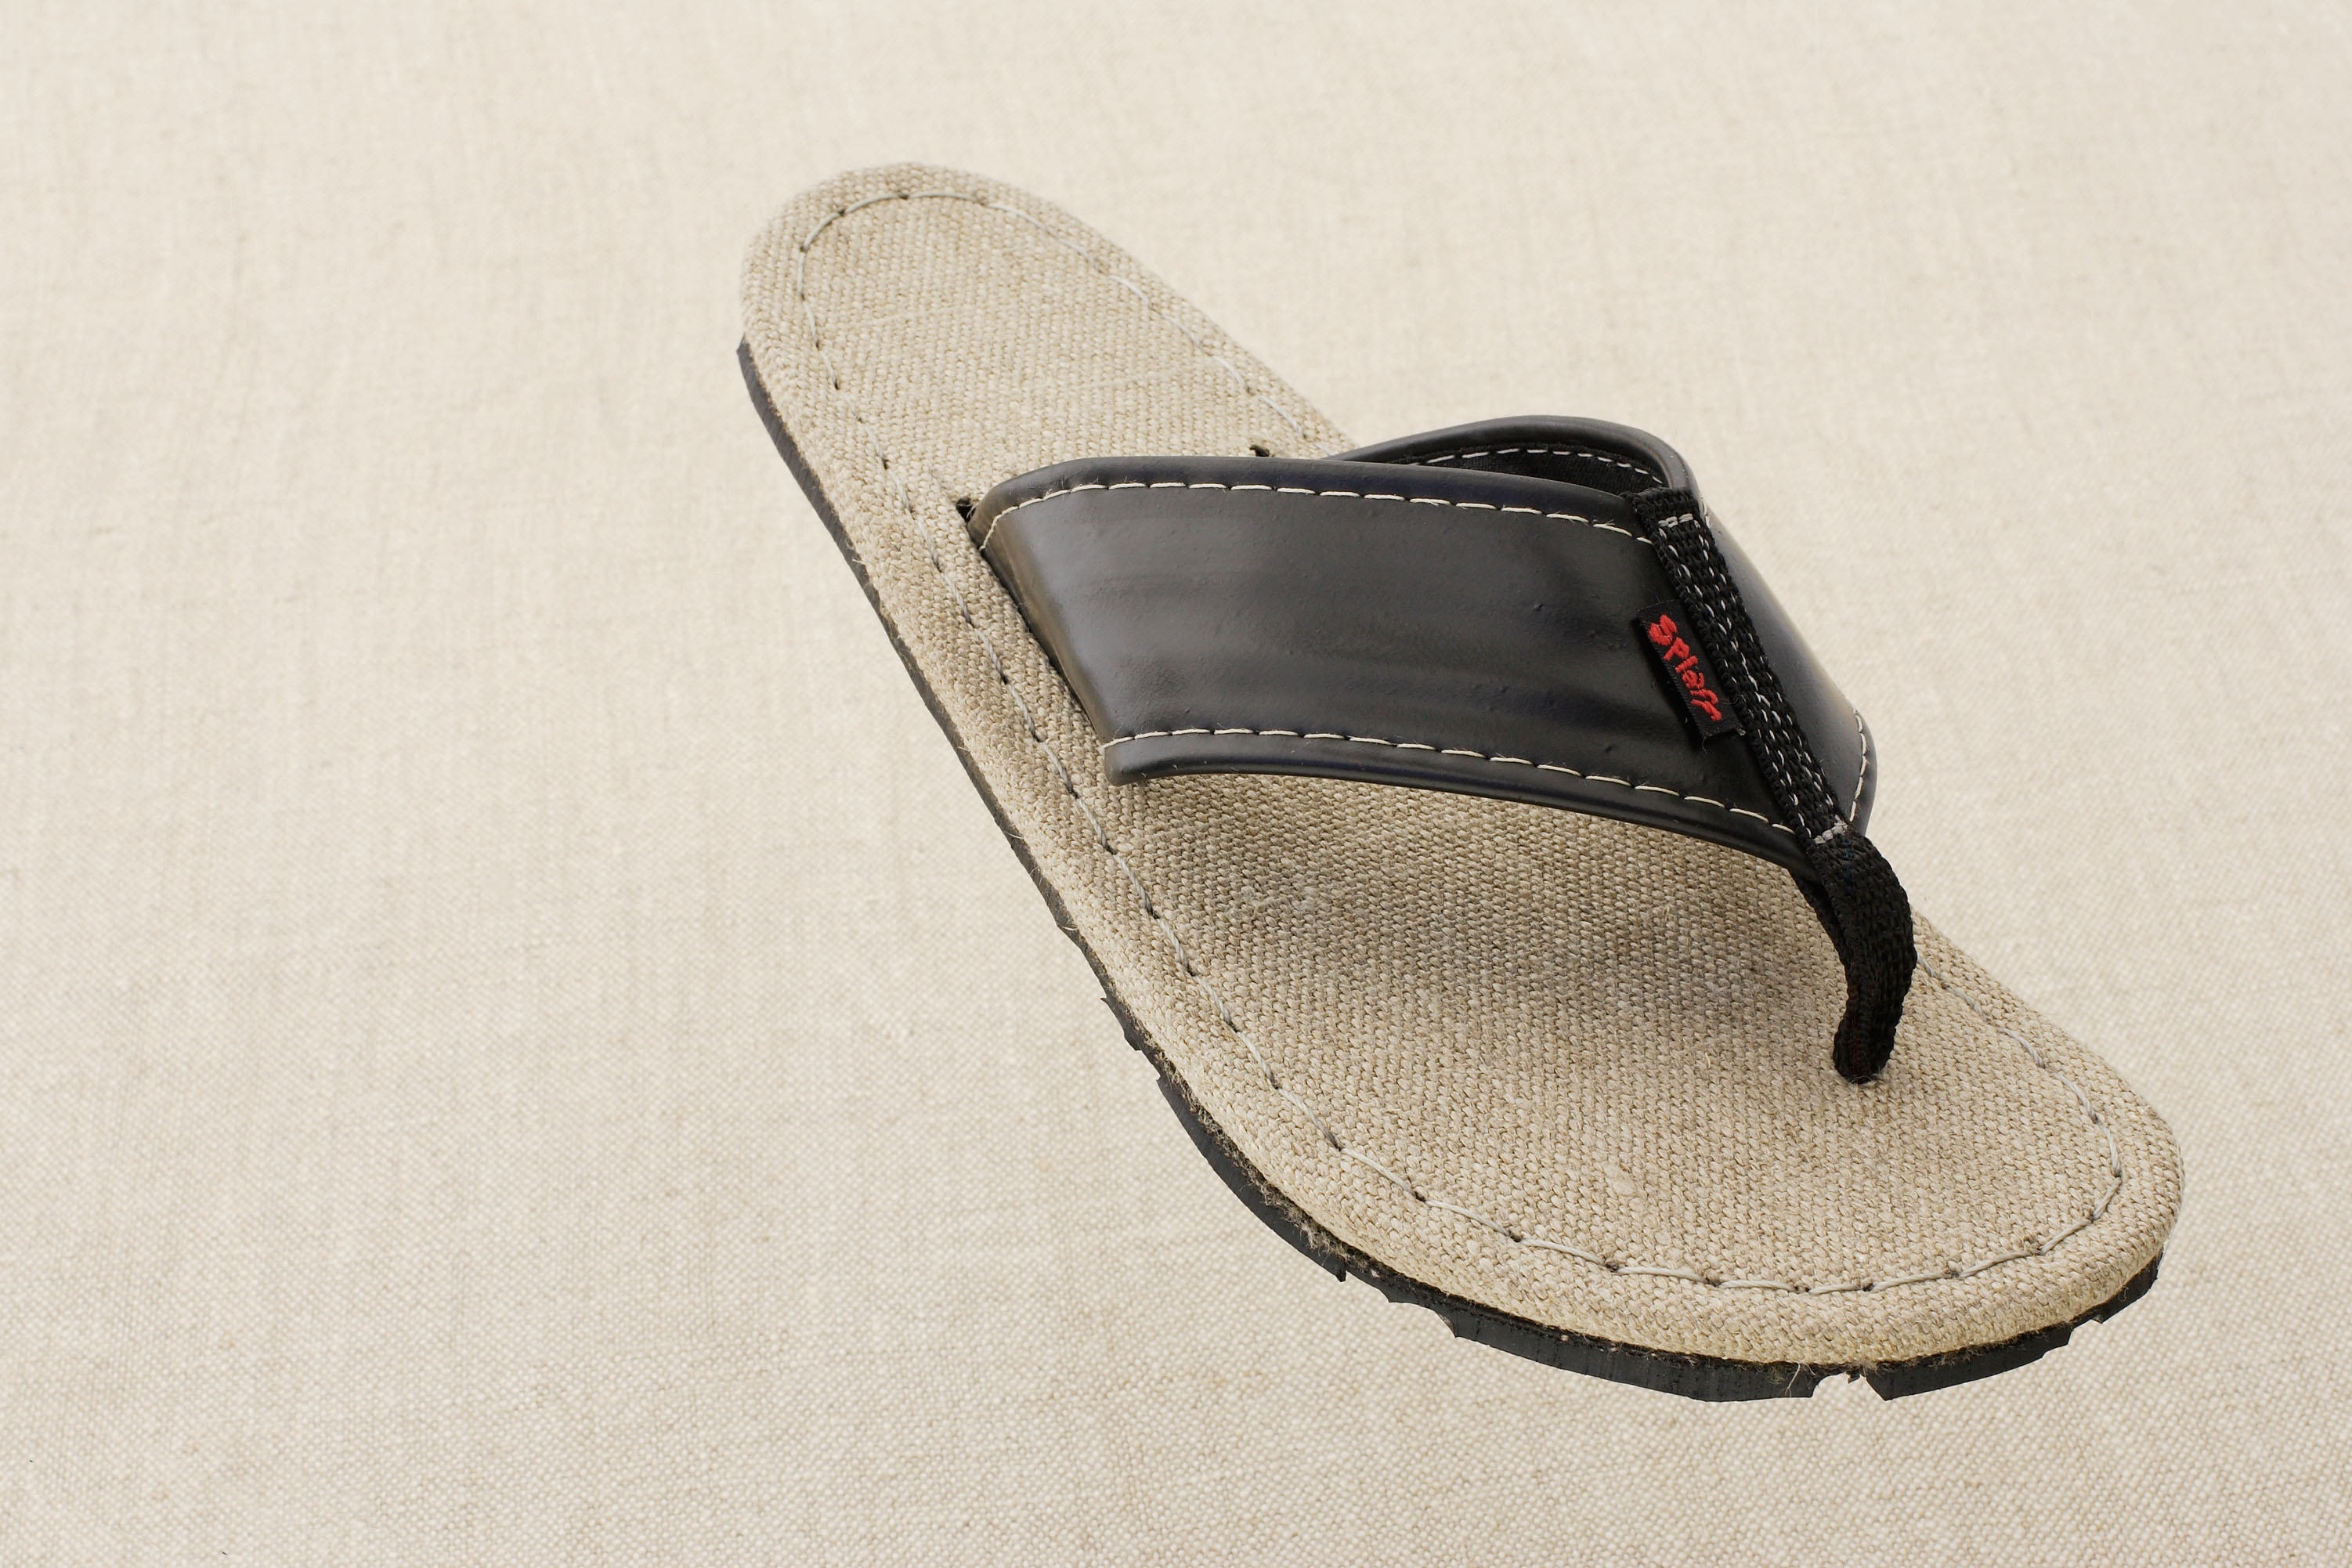 Splaff Recycled Racing Sandals: From Zero to Ecostyle in a Matter of Seconds